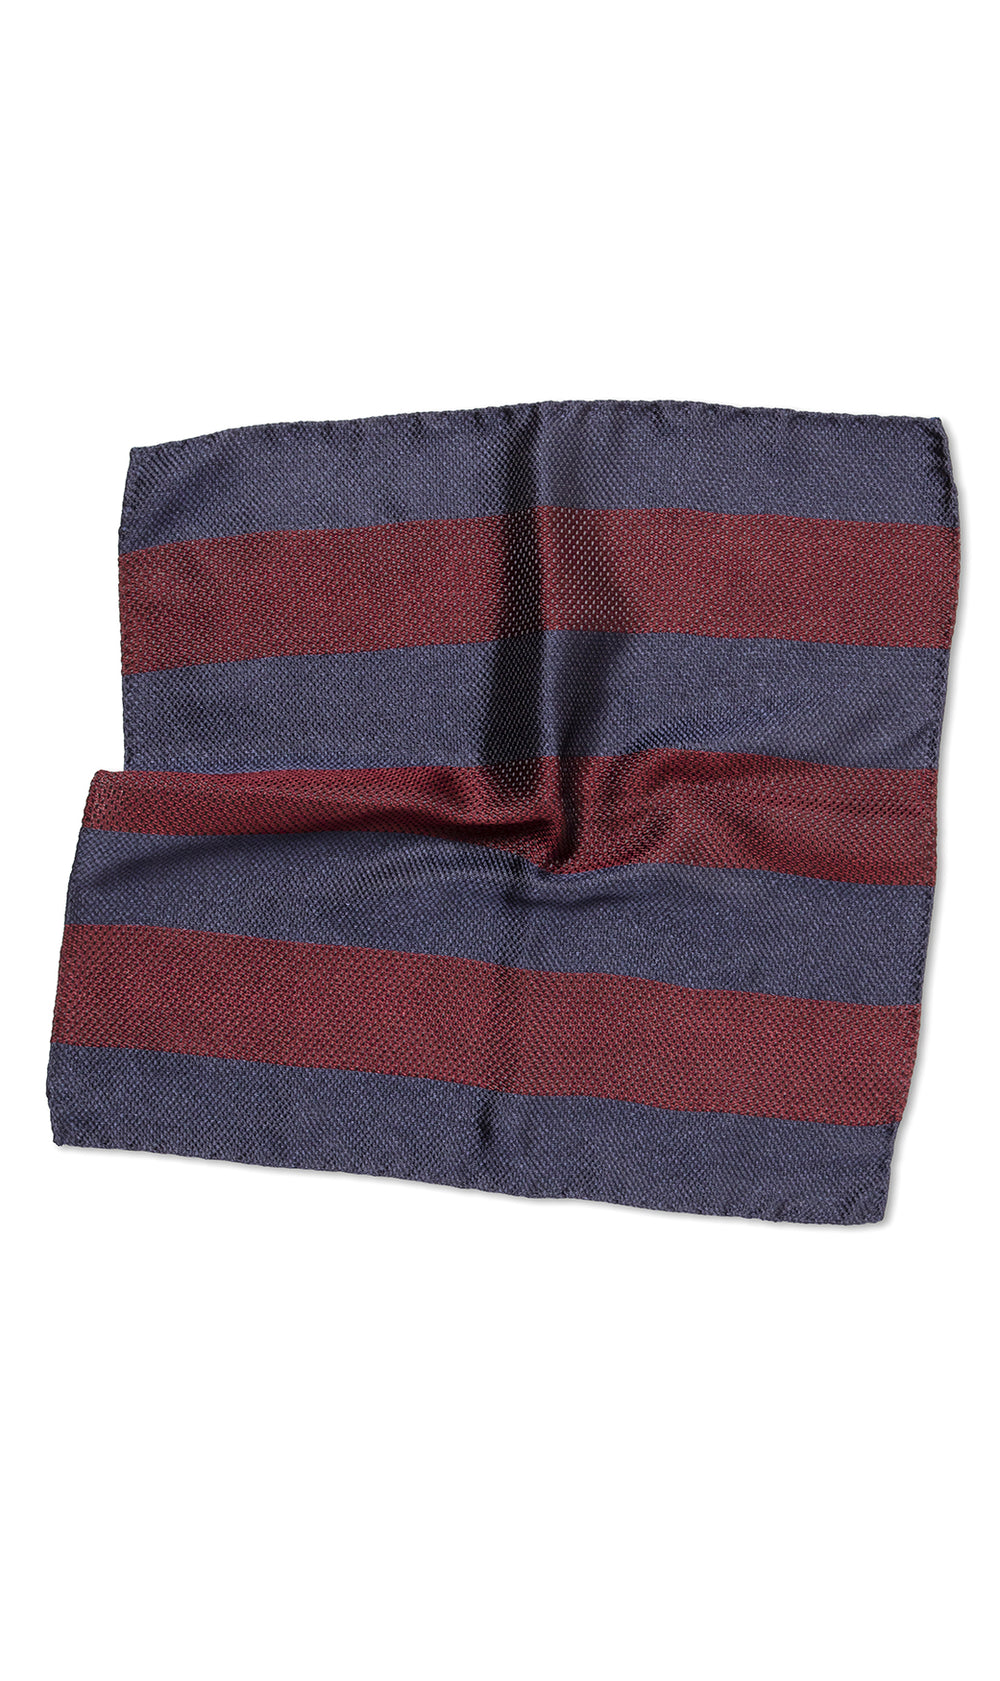 Firenze Navy Burgundy Pocket Square - MCM Studio